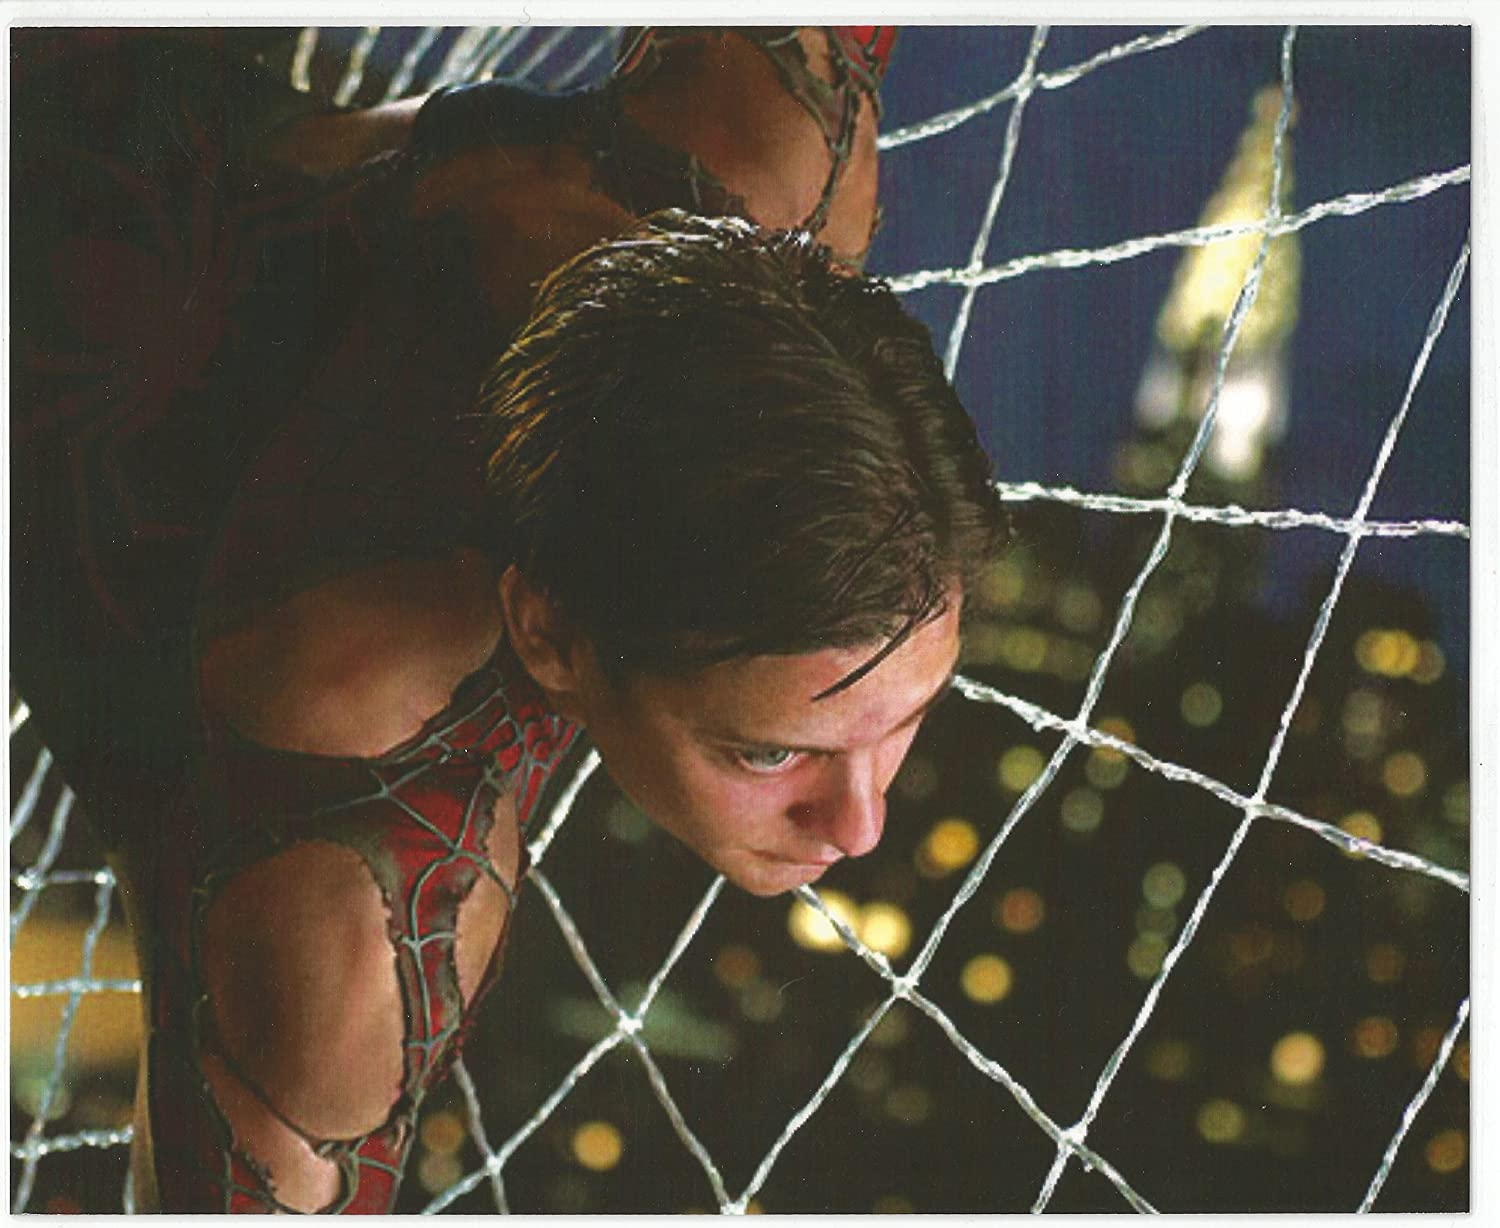 Spiderman 3 - Toby